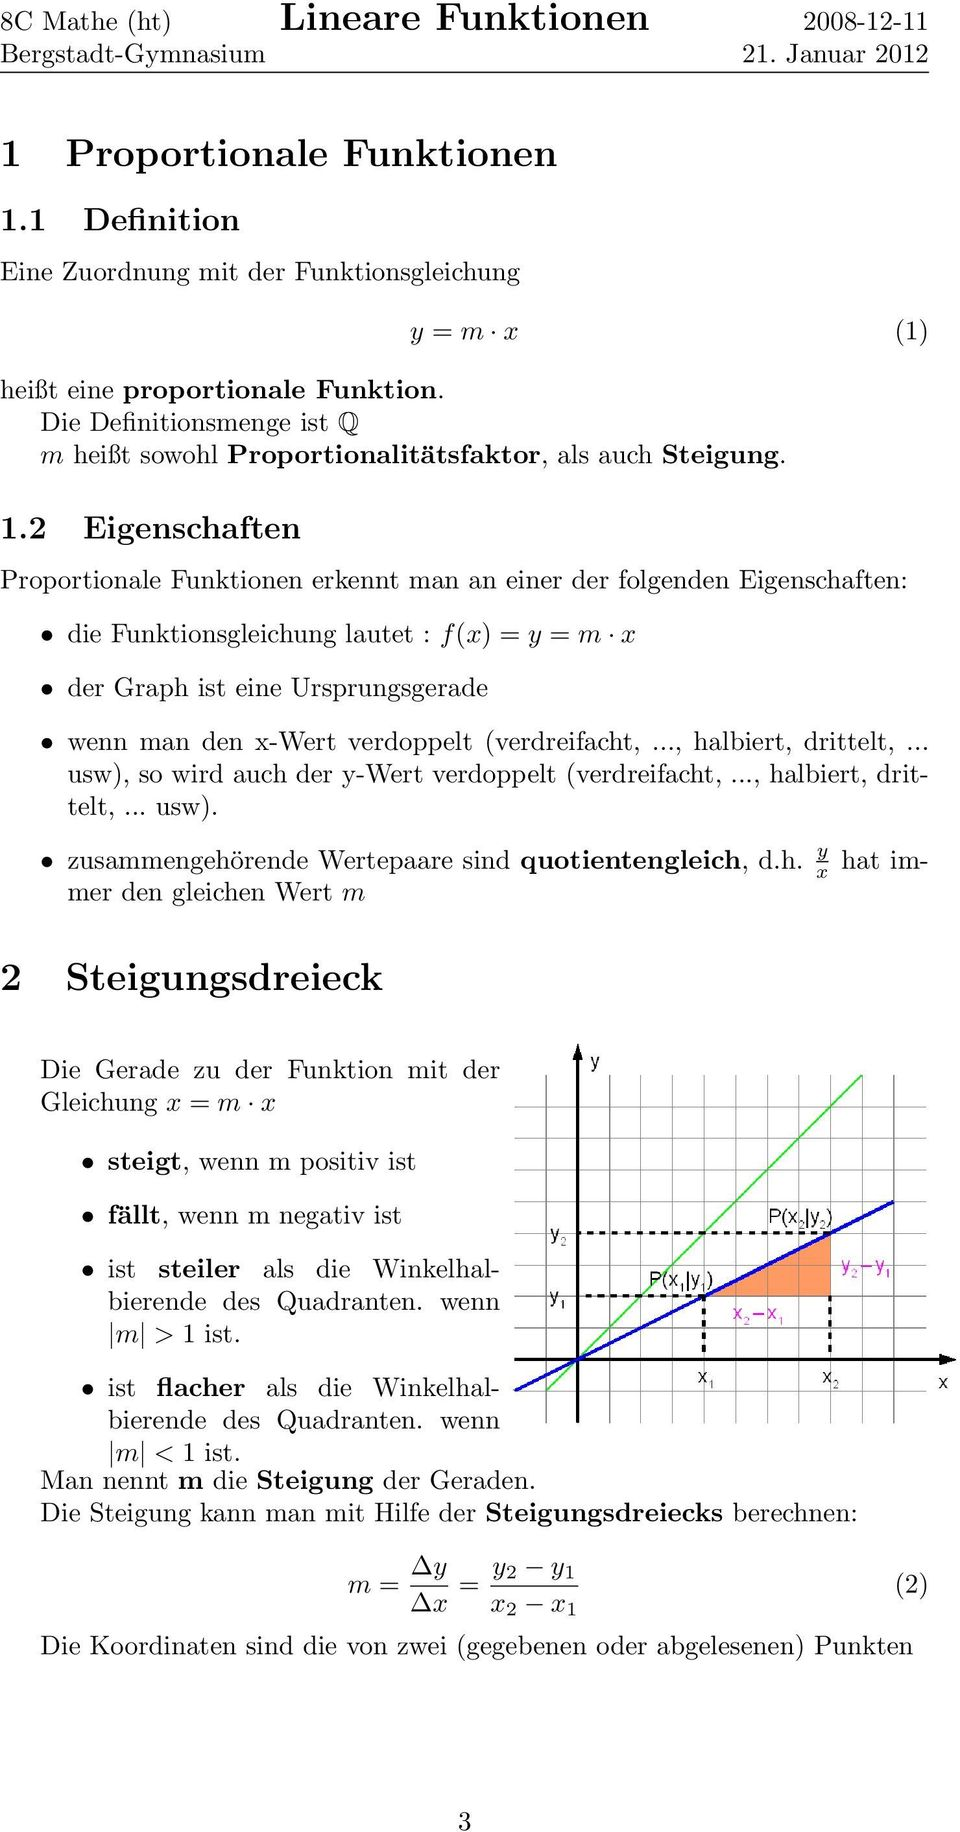 Lineare Funktionen. 1 Proportionale Funktionen Definition ...